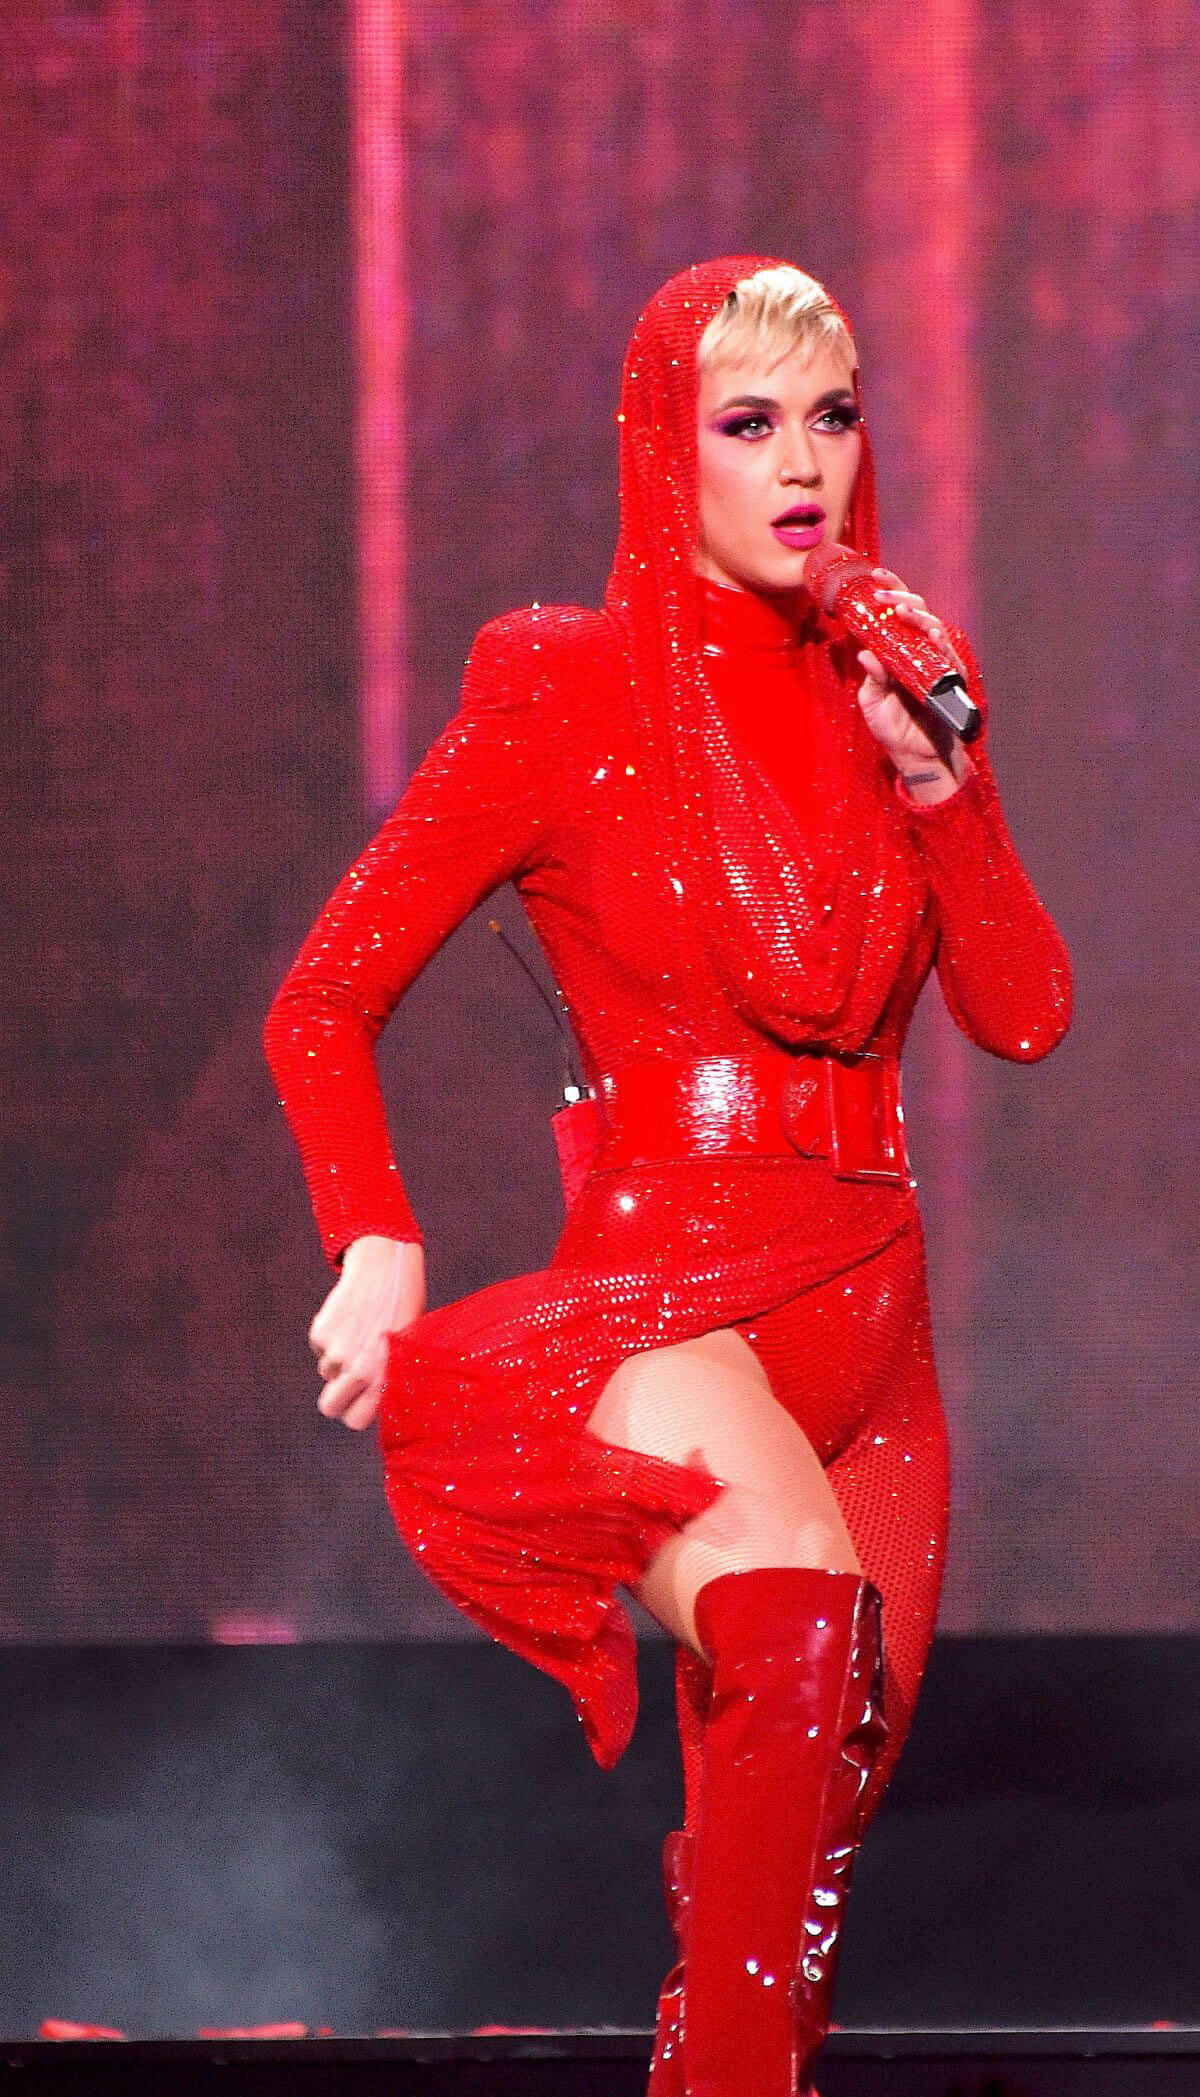 Katy Perry Stills Performs at Witness Tour at Portland's Moda Center 2018/02/02